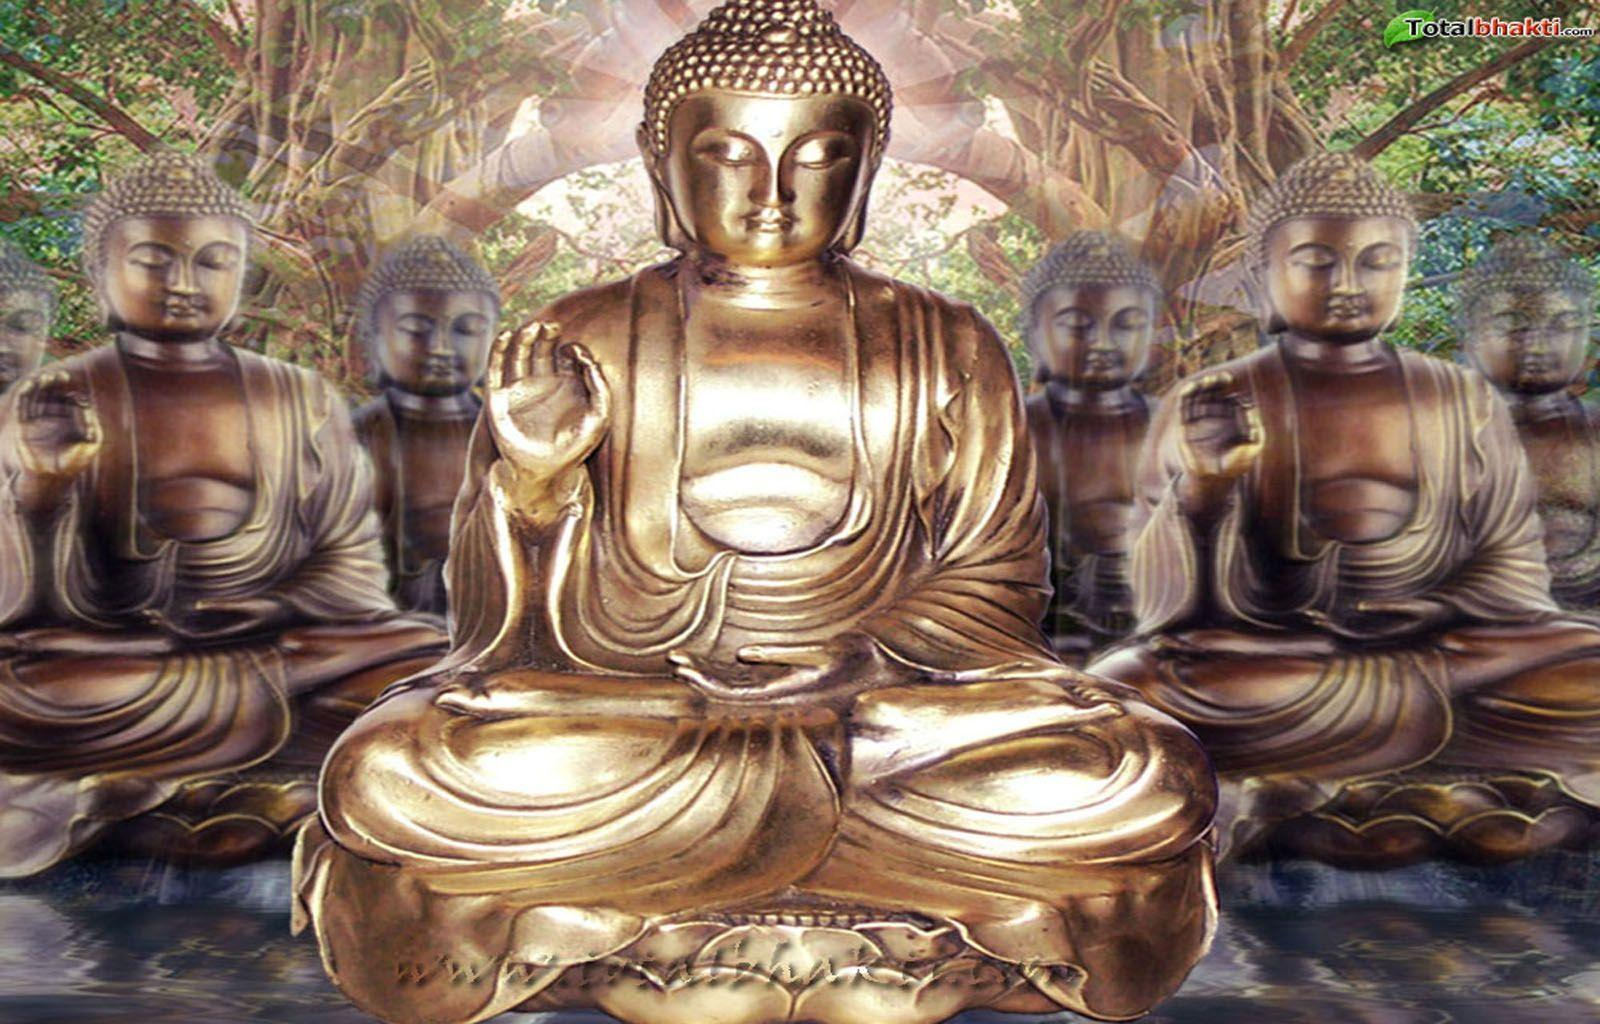 buddha wallpaper, Hindu wallpaper, Lord Buddha blessing images ...